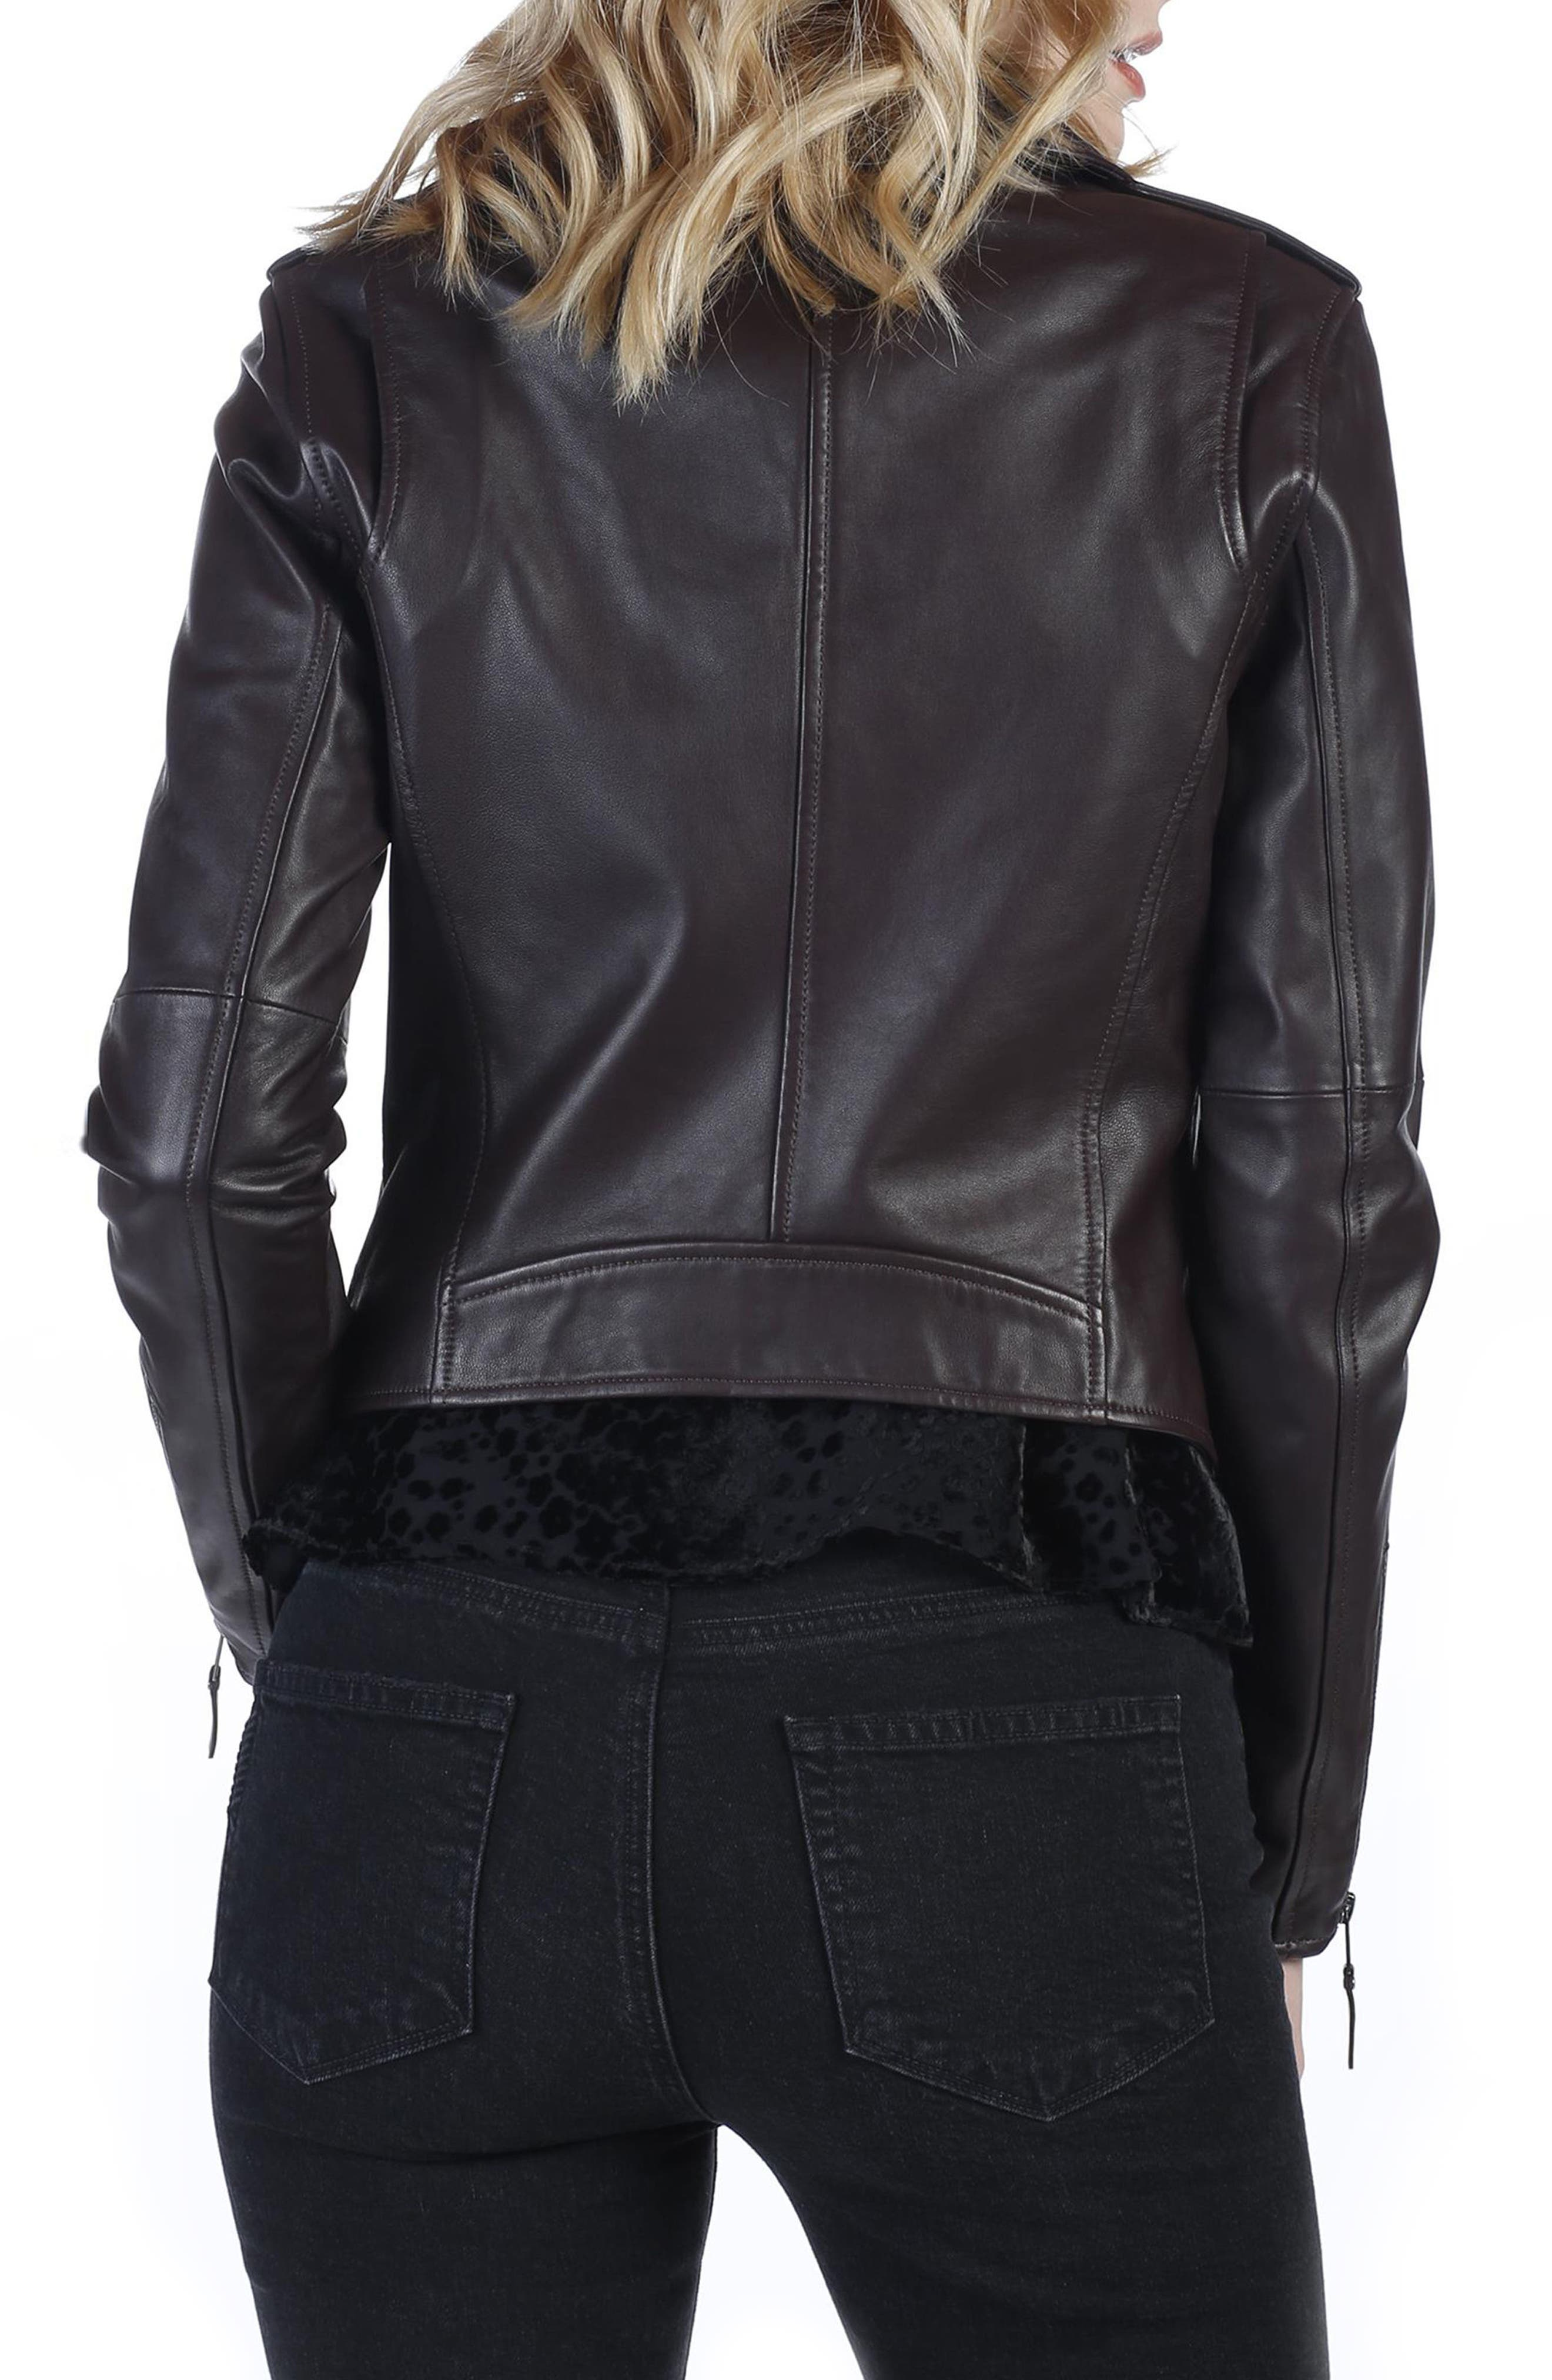 Danette Leather Moto Jacket,                             Alternate thumbnail 3, color,                             606